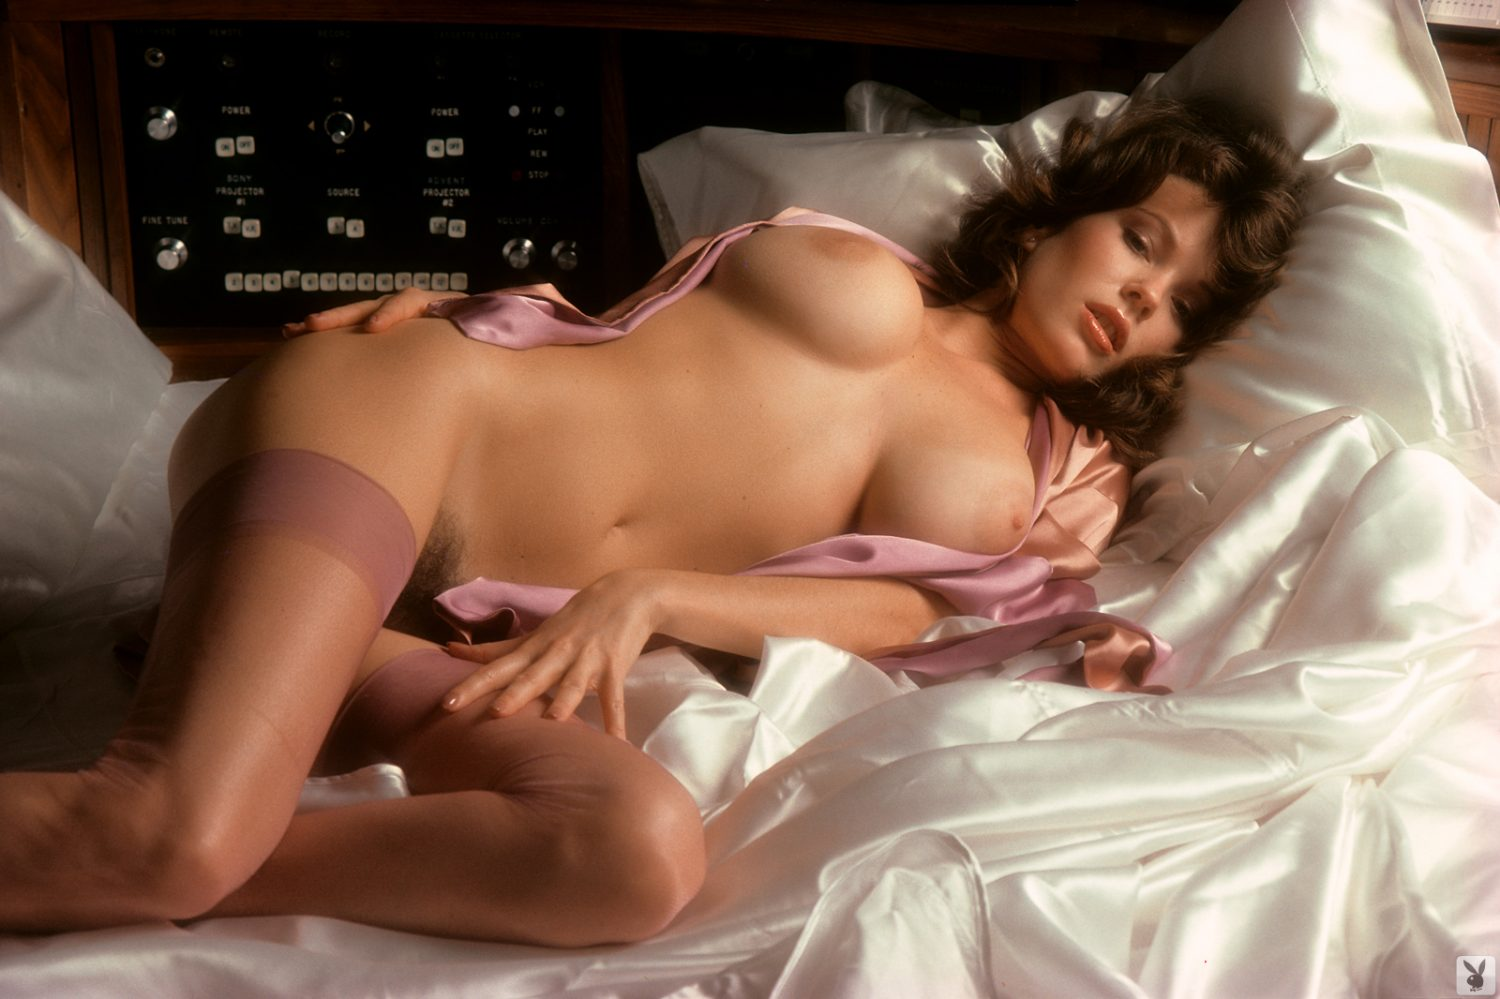 Candy Loving Nude Playboy